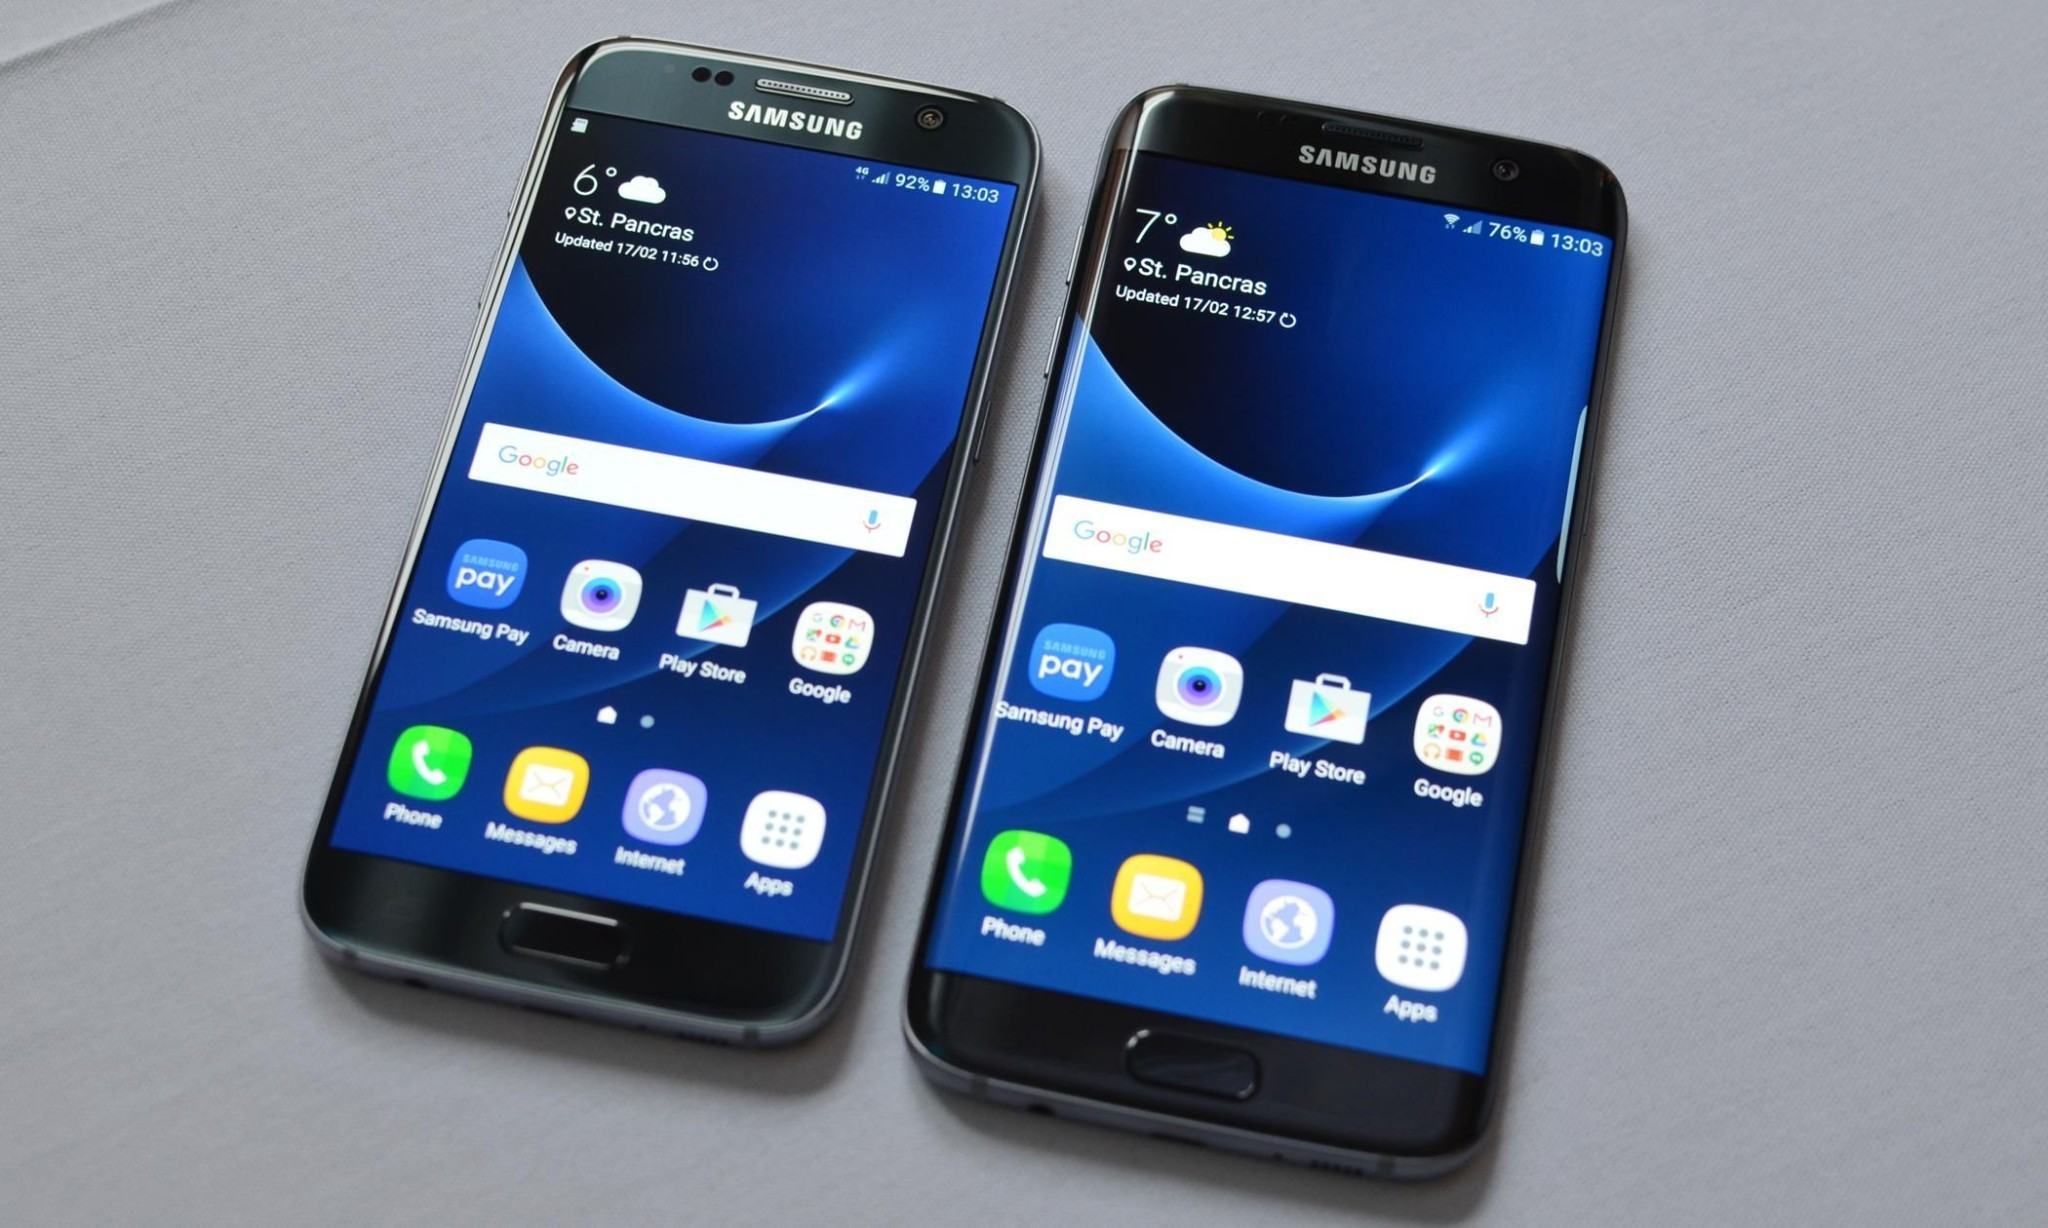 Samsung Galaxy S7 and S7 Edge waterproof flagship smartphones launched at MWC